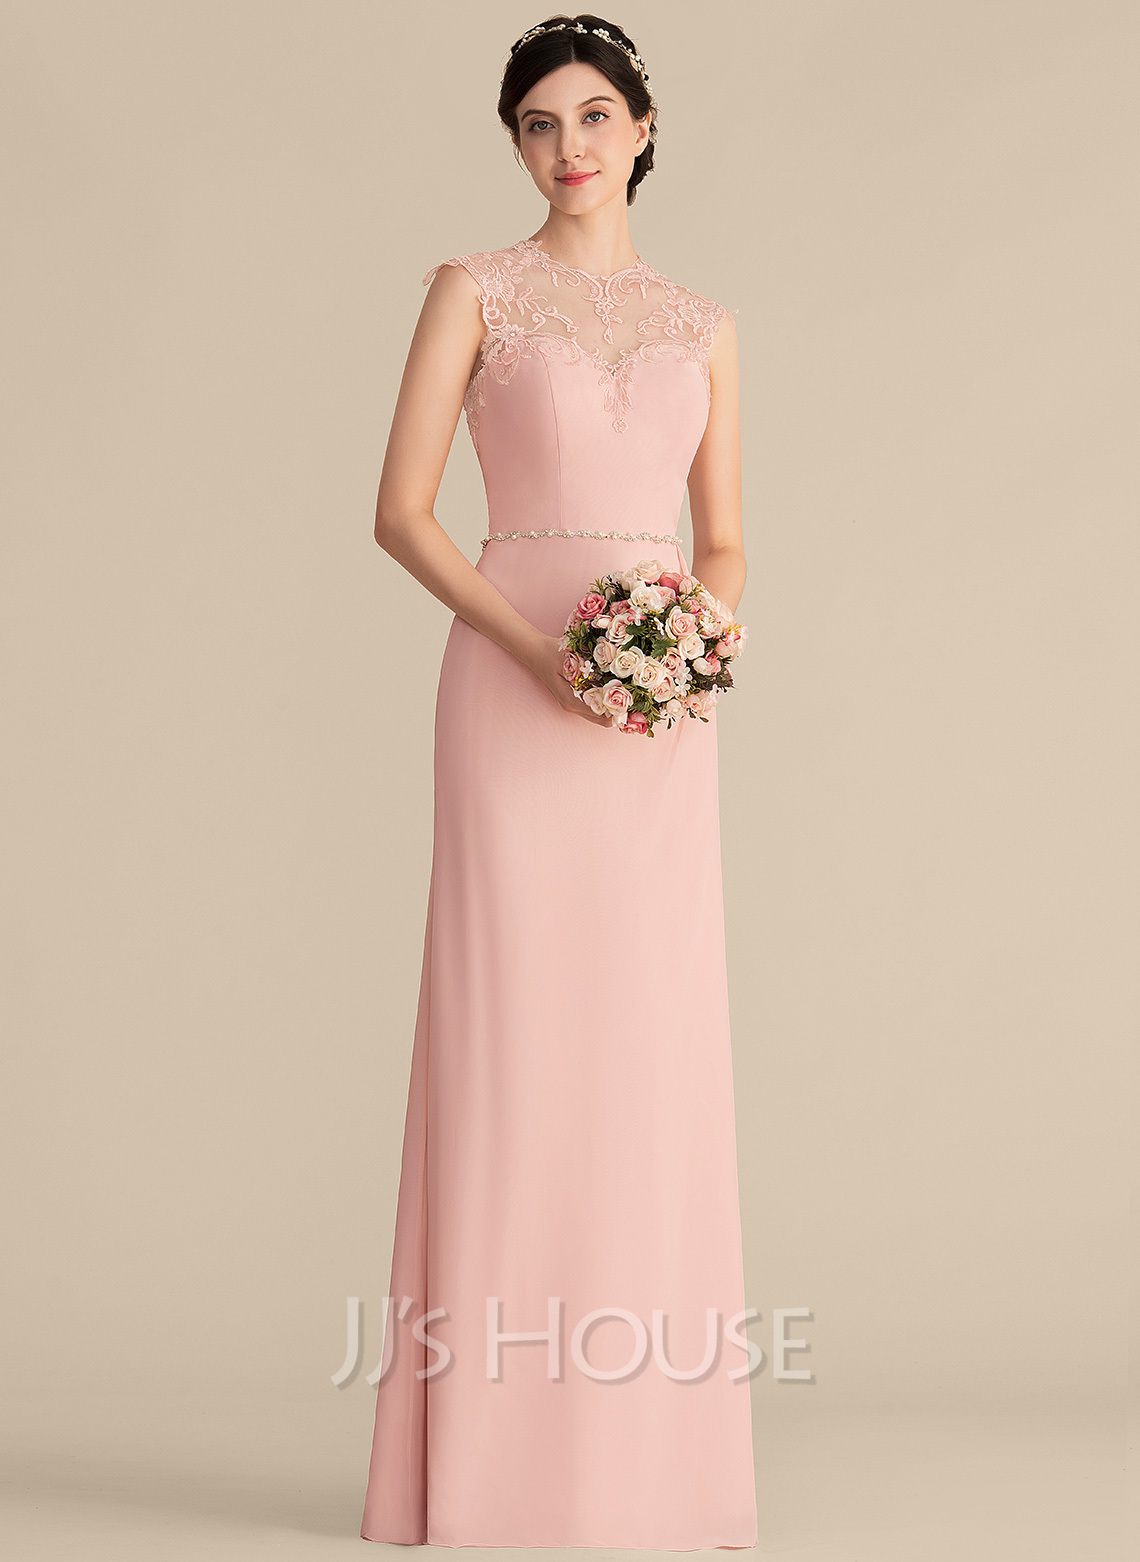 Scoop Neck Floor-Length Chiffon Lace Bridesmaid Dress With Beading